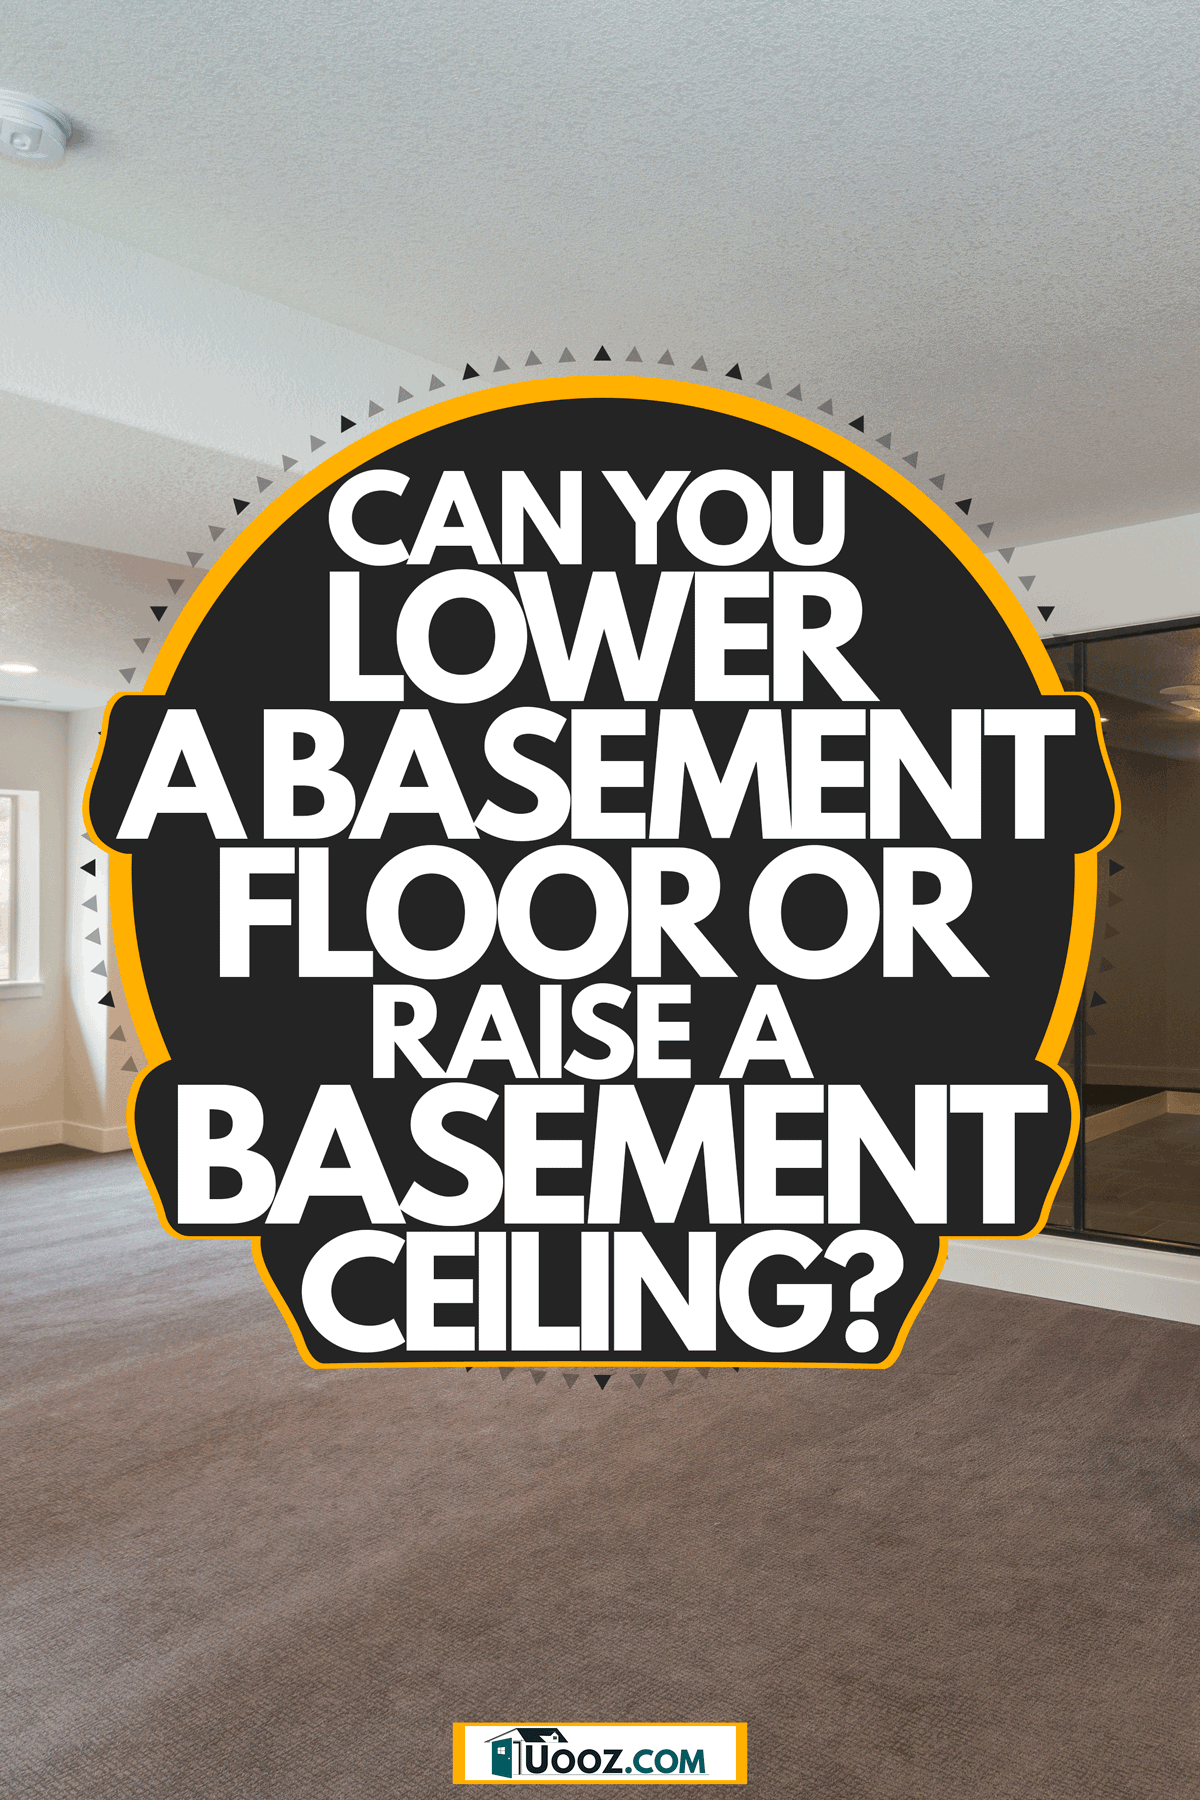 Interior of a spacious and a contemporary themed design with carpeted flooring, Can You Lower A Basement Floor Or Raise A Basement Ceiling?